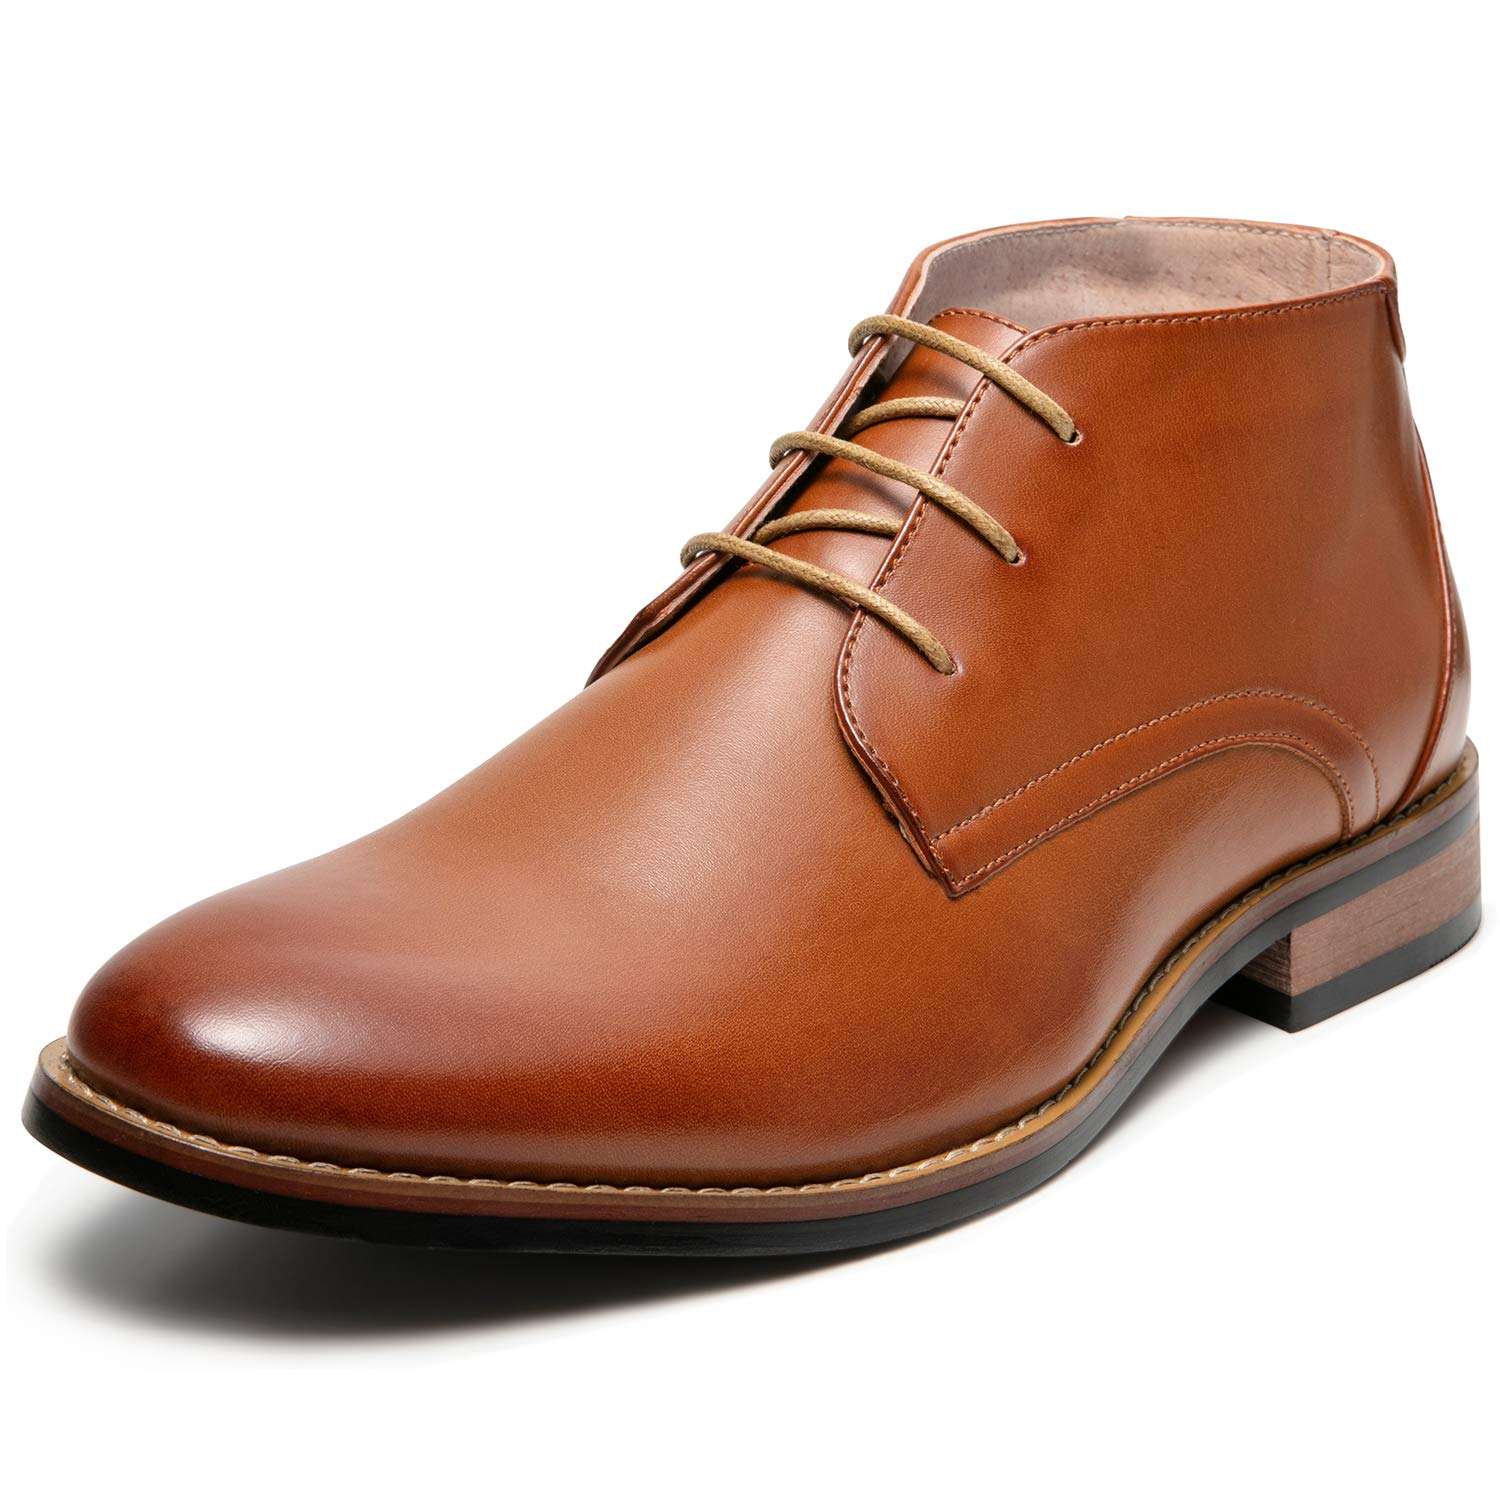 Mens Retro Shoes | Vintage Shoes & Boots ZRIANG Mens Oxford Dress Leather Lined Round Toe Angle Boots $25.99 AT vintagedancer.com